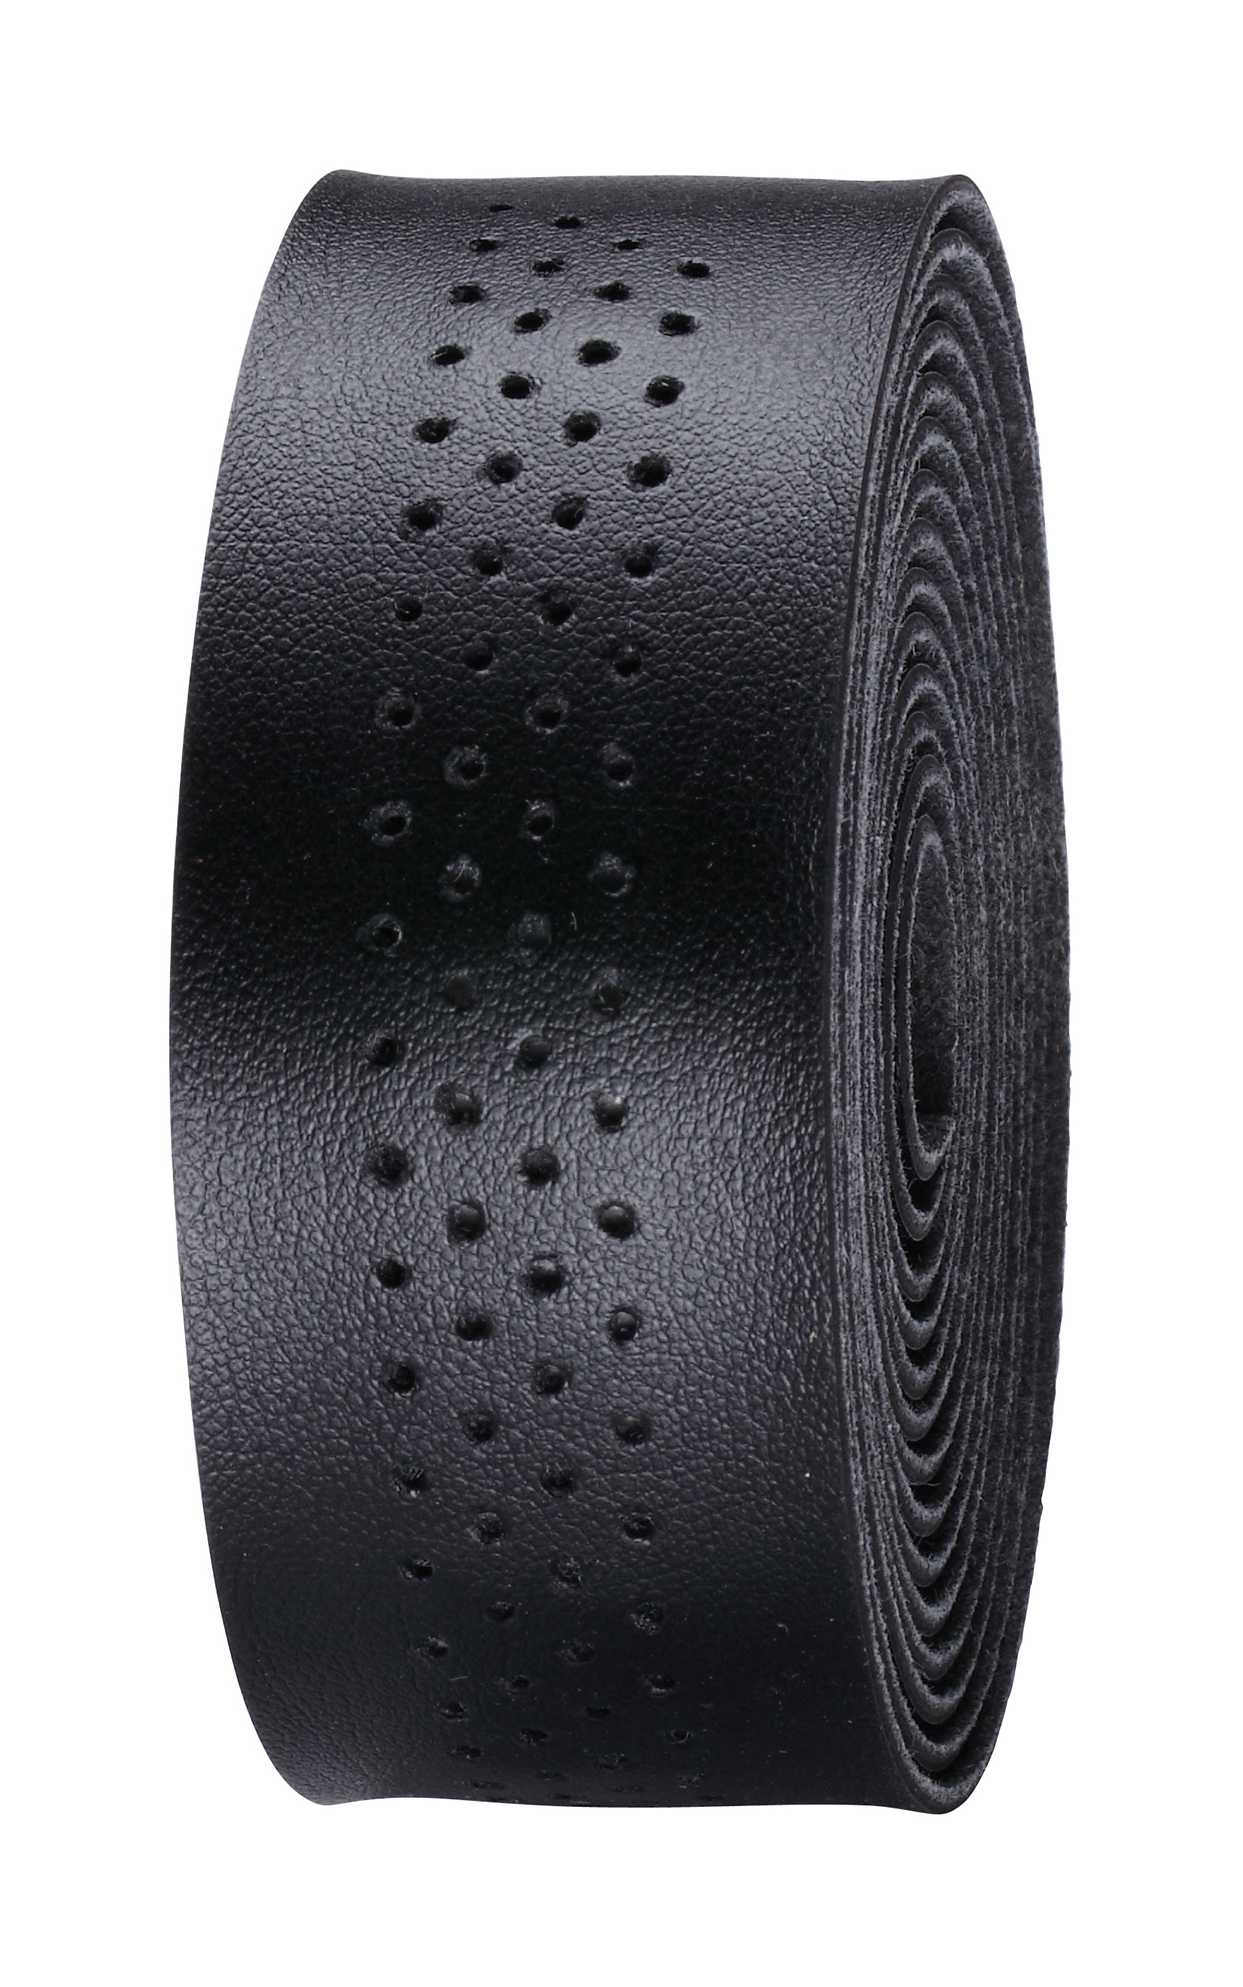 BBB Speedribbon Bar Tape - Black